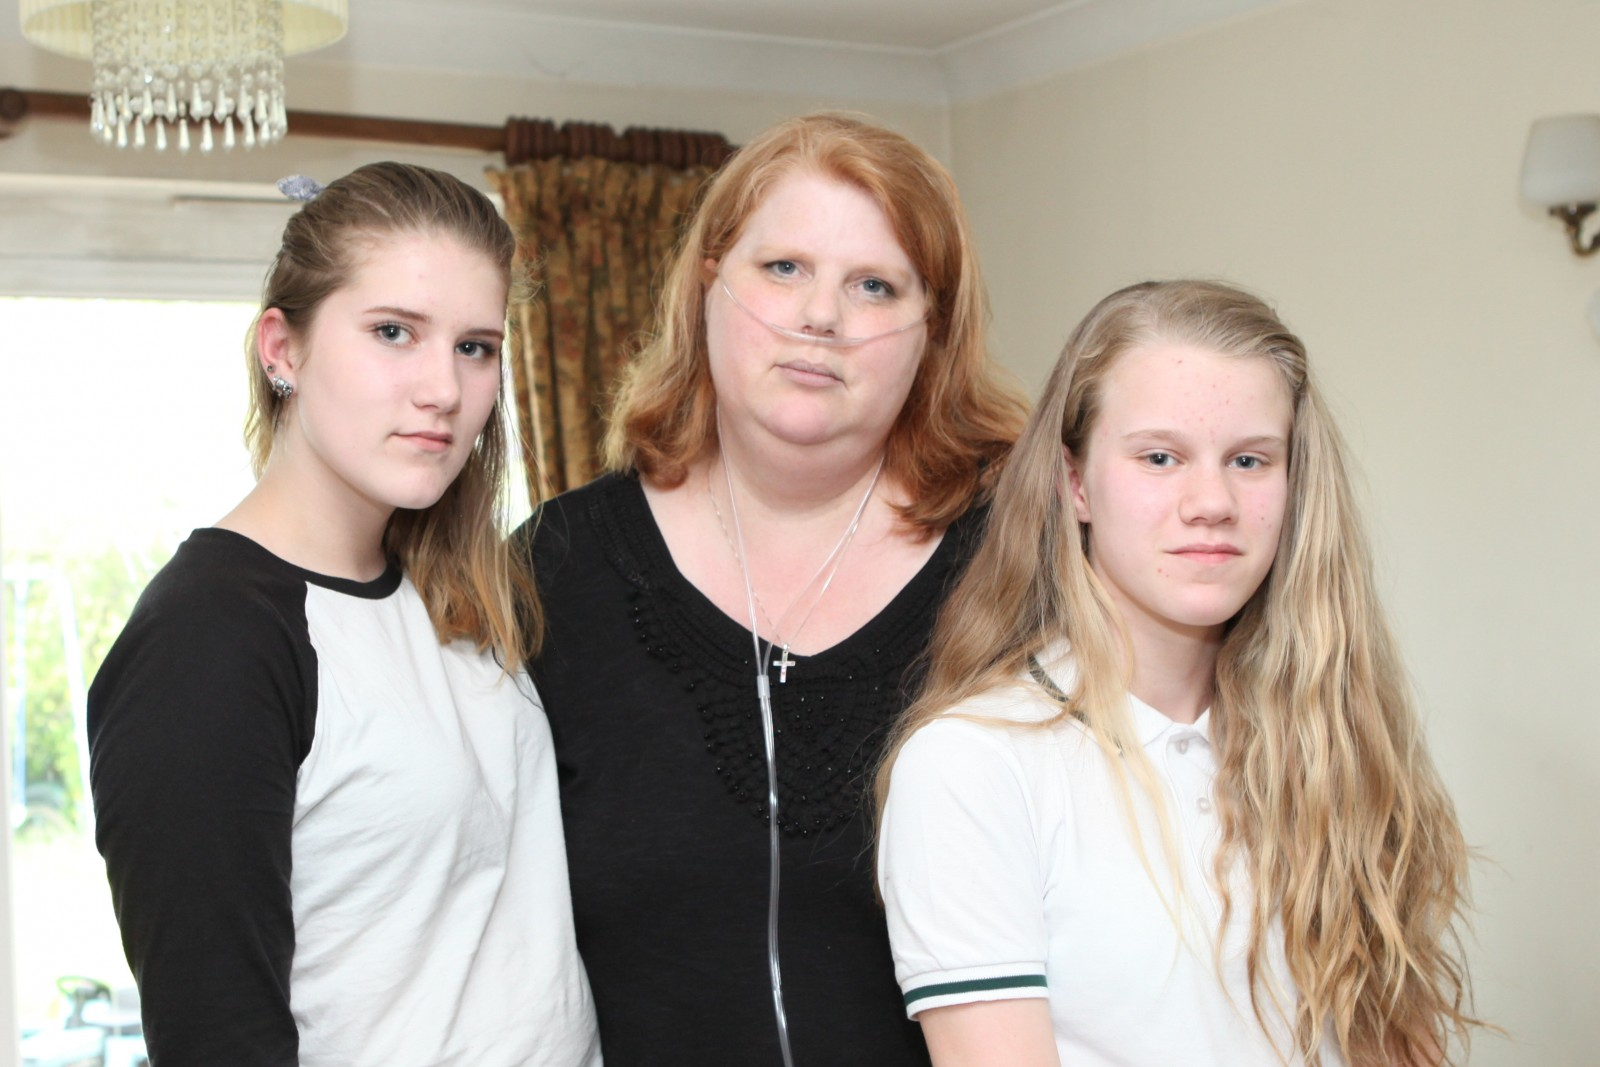 A mum and her five kids have been left homeless after their tumble drier did THIS to their kitchen.